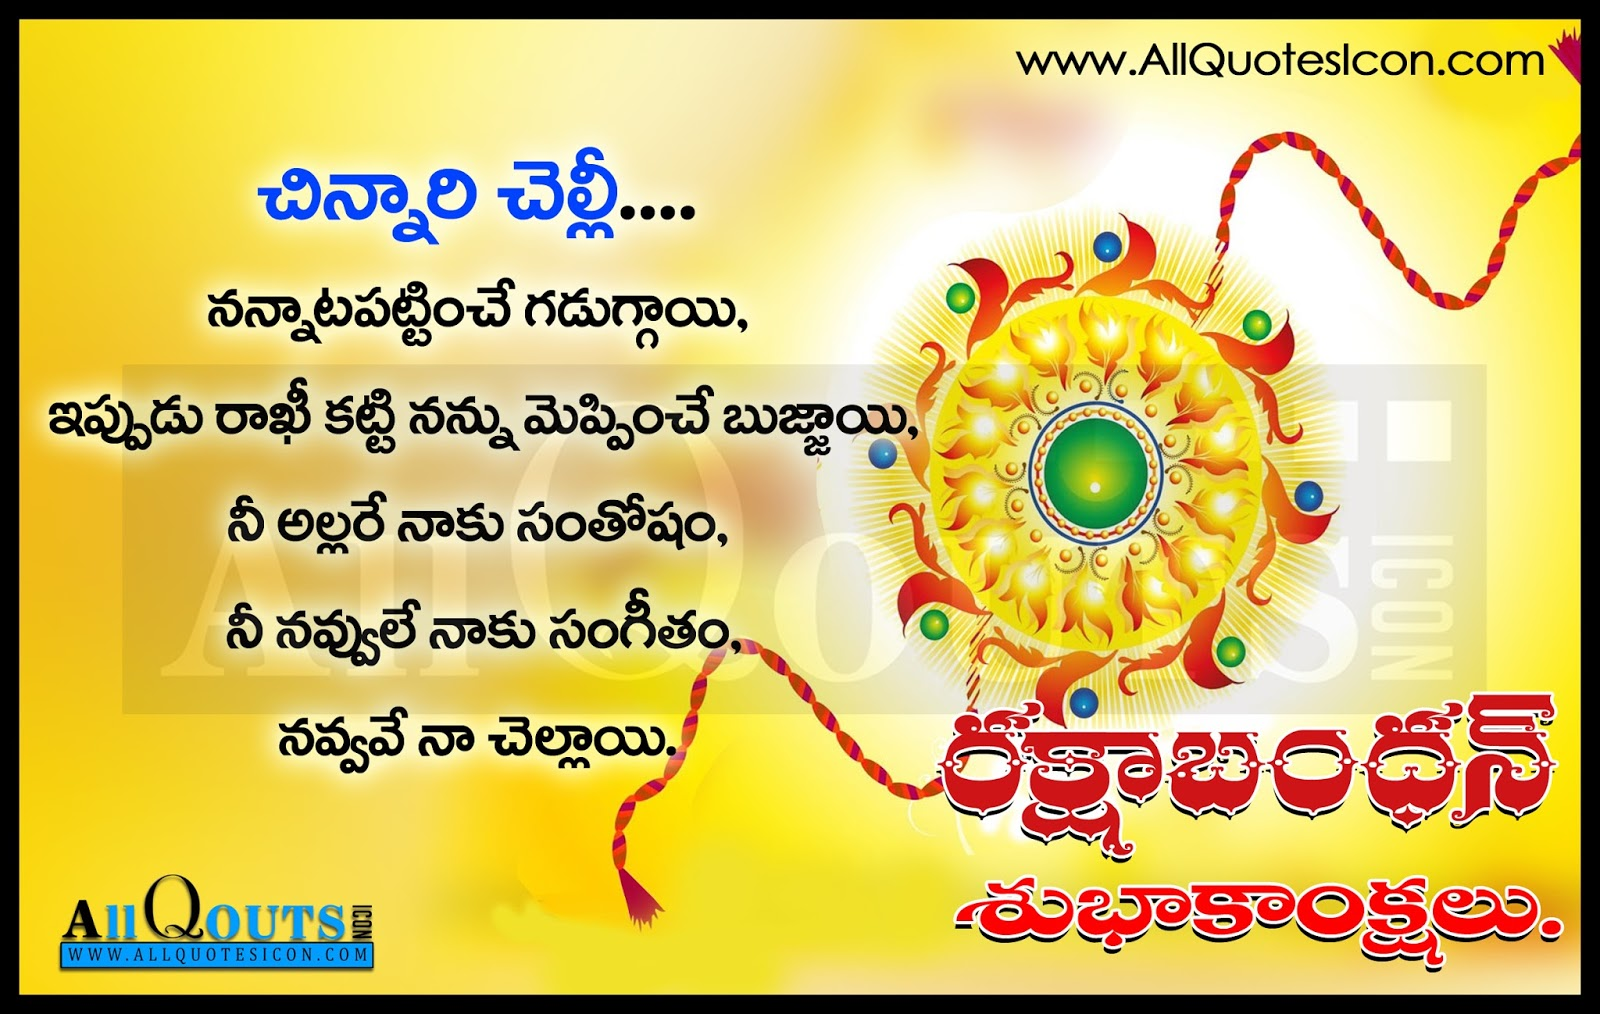 Happy Raksha Bandhan Greetings Cards Images Pictures in Marathi & Telugu (4)